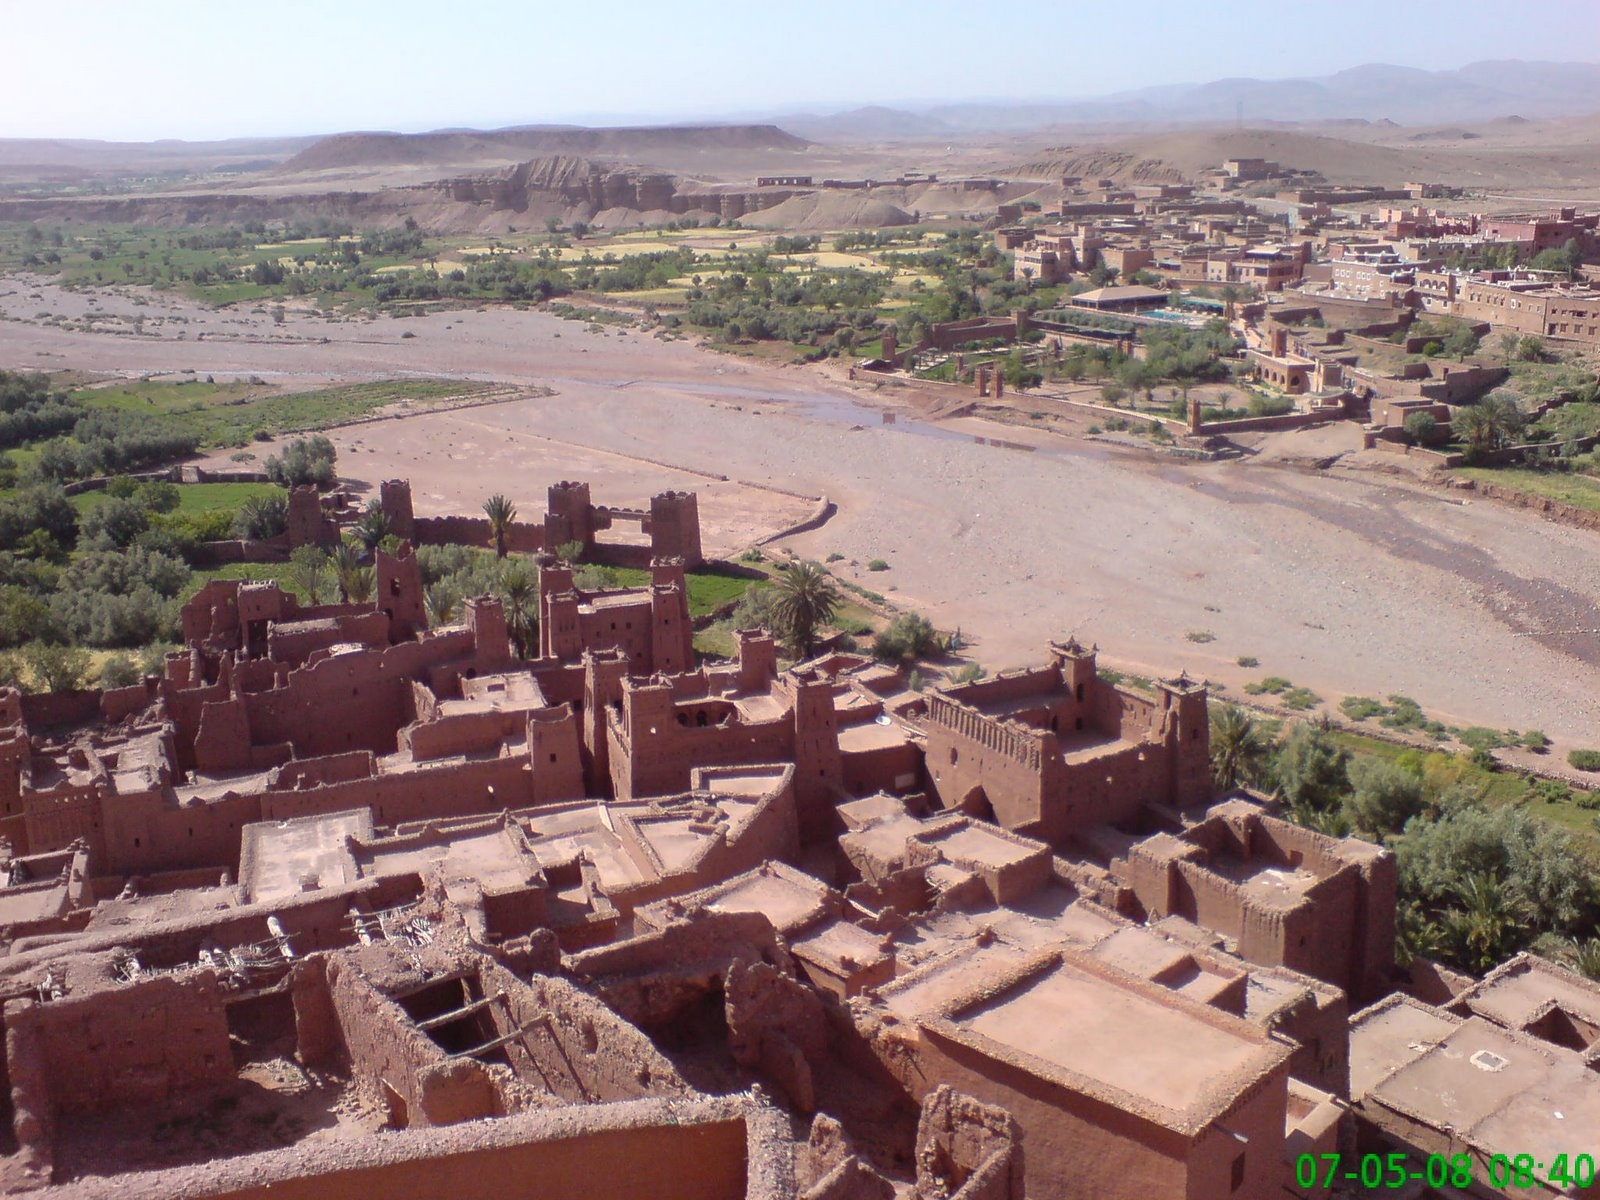 View from Ait Ben Haddou